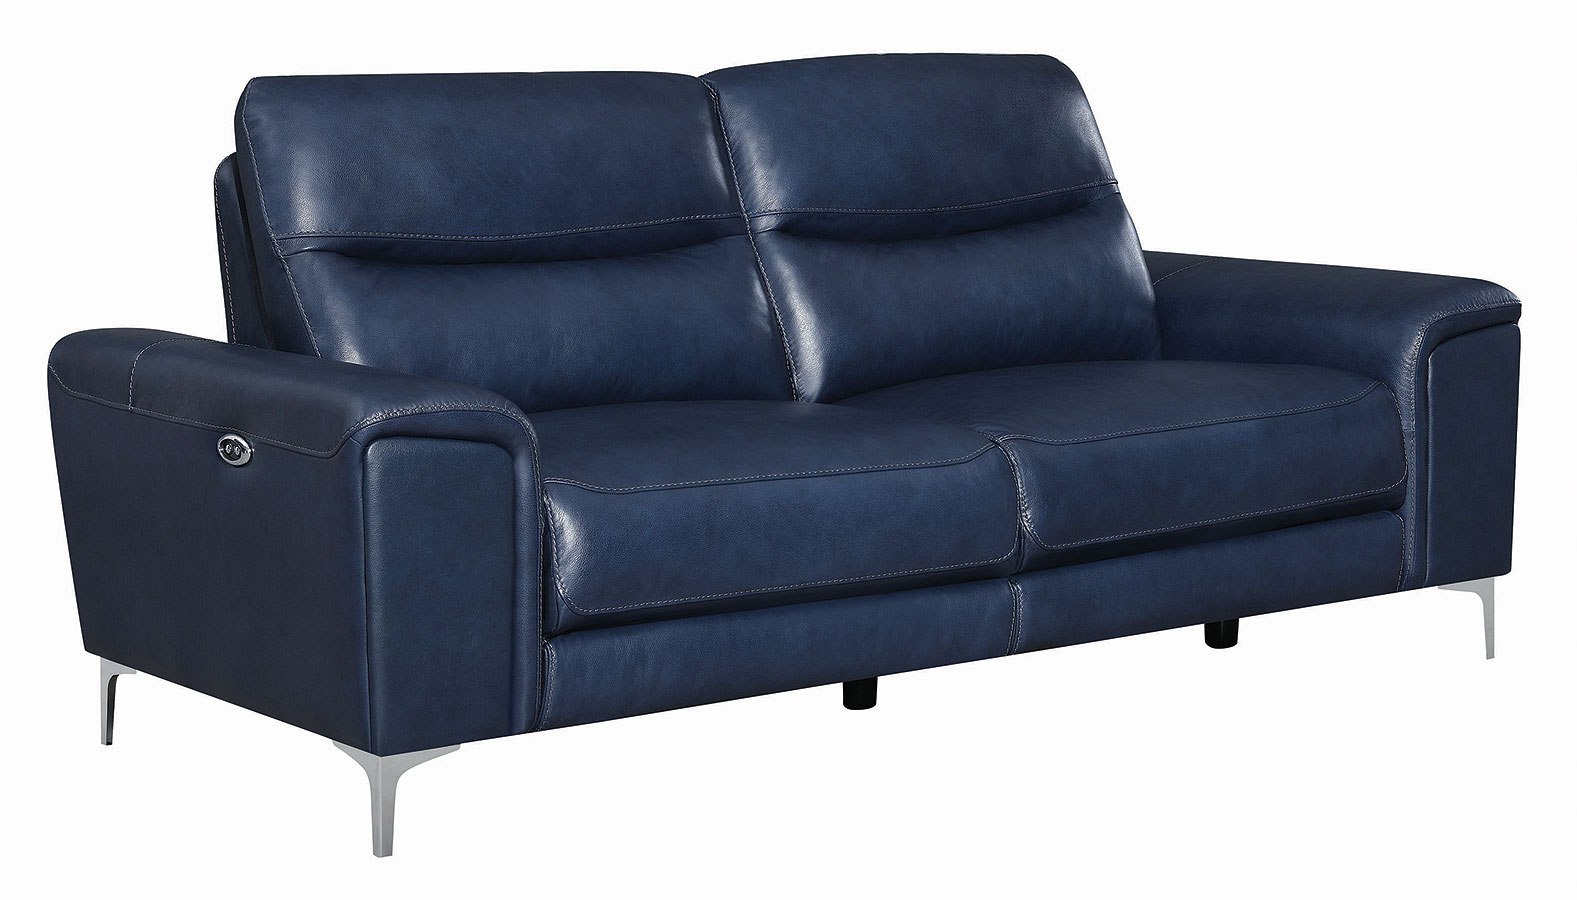 Marvelous Largo Power Reclining Sofa Ink Blue Home Interior And Landscaping Palasignezvosmurscom